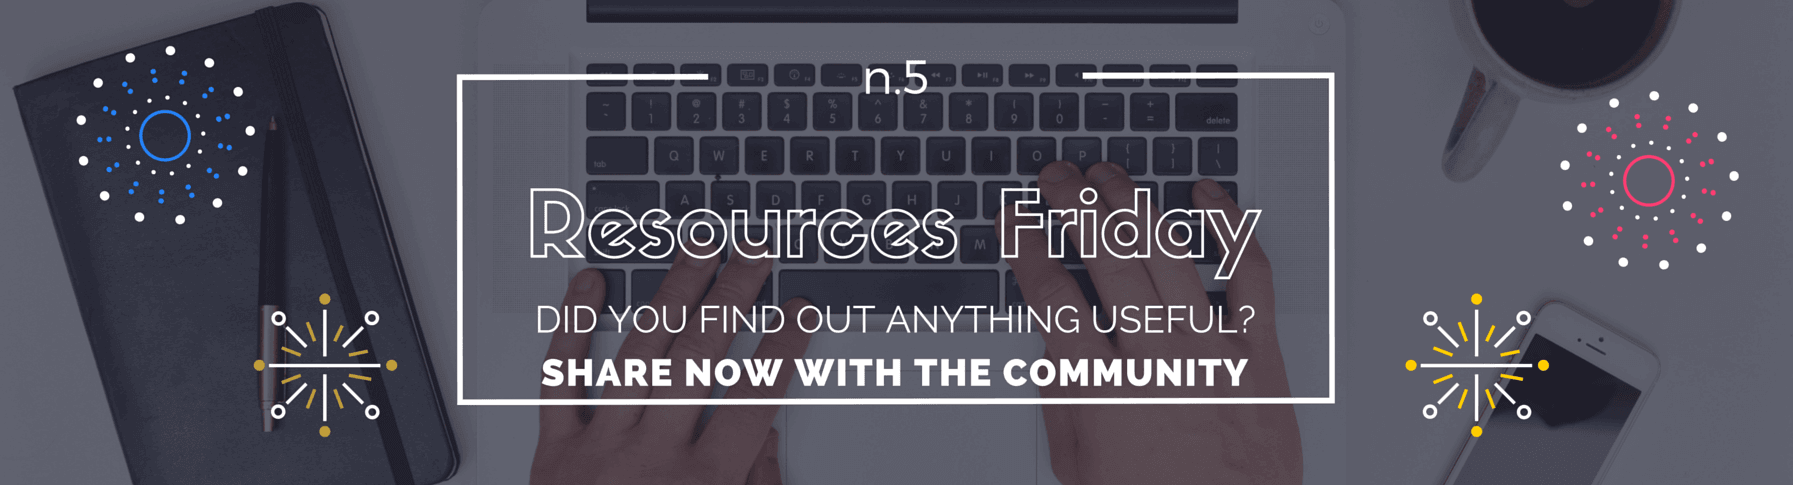 Resources Friday n.5